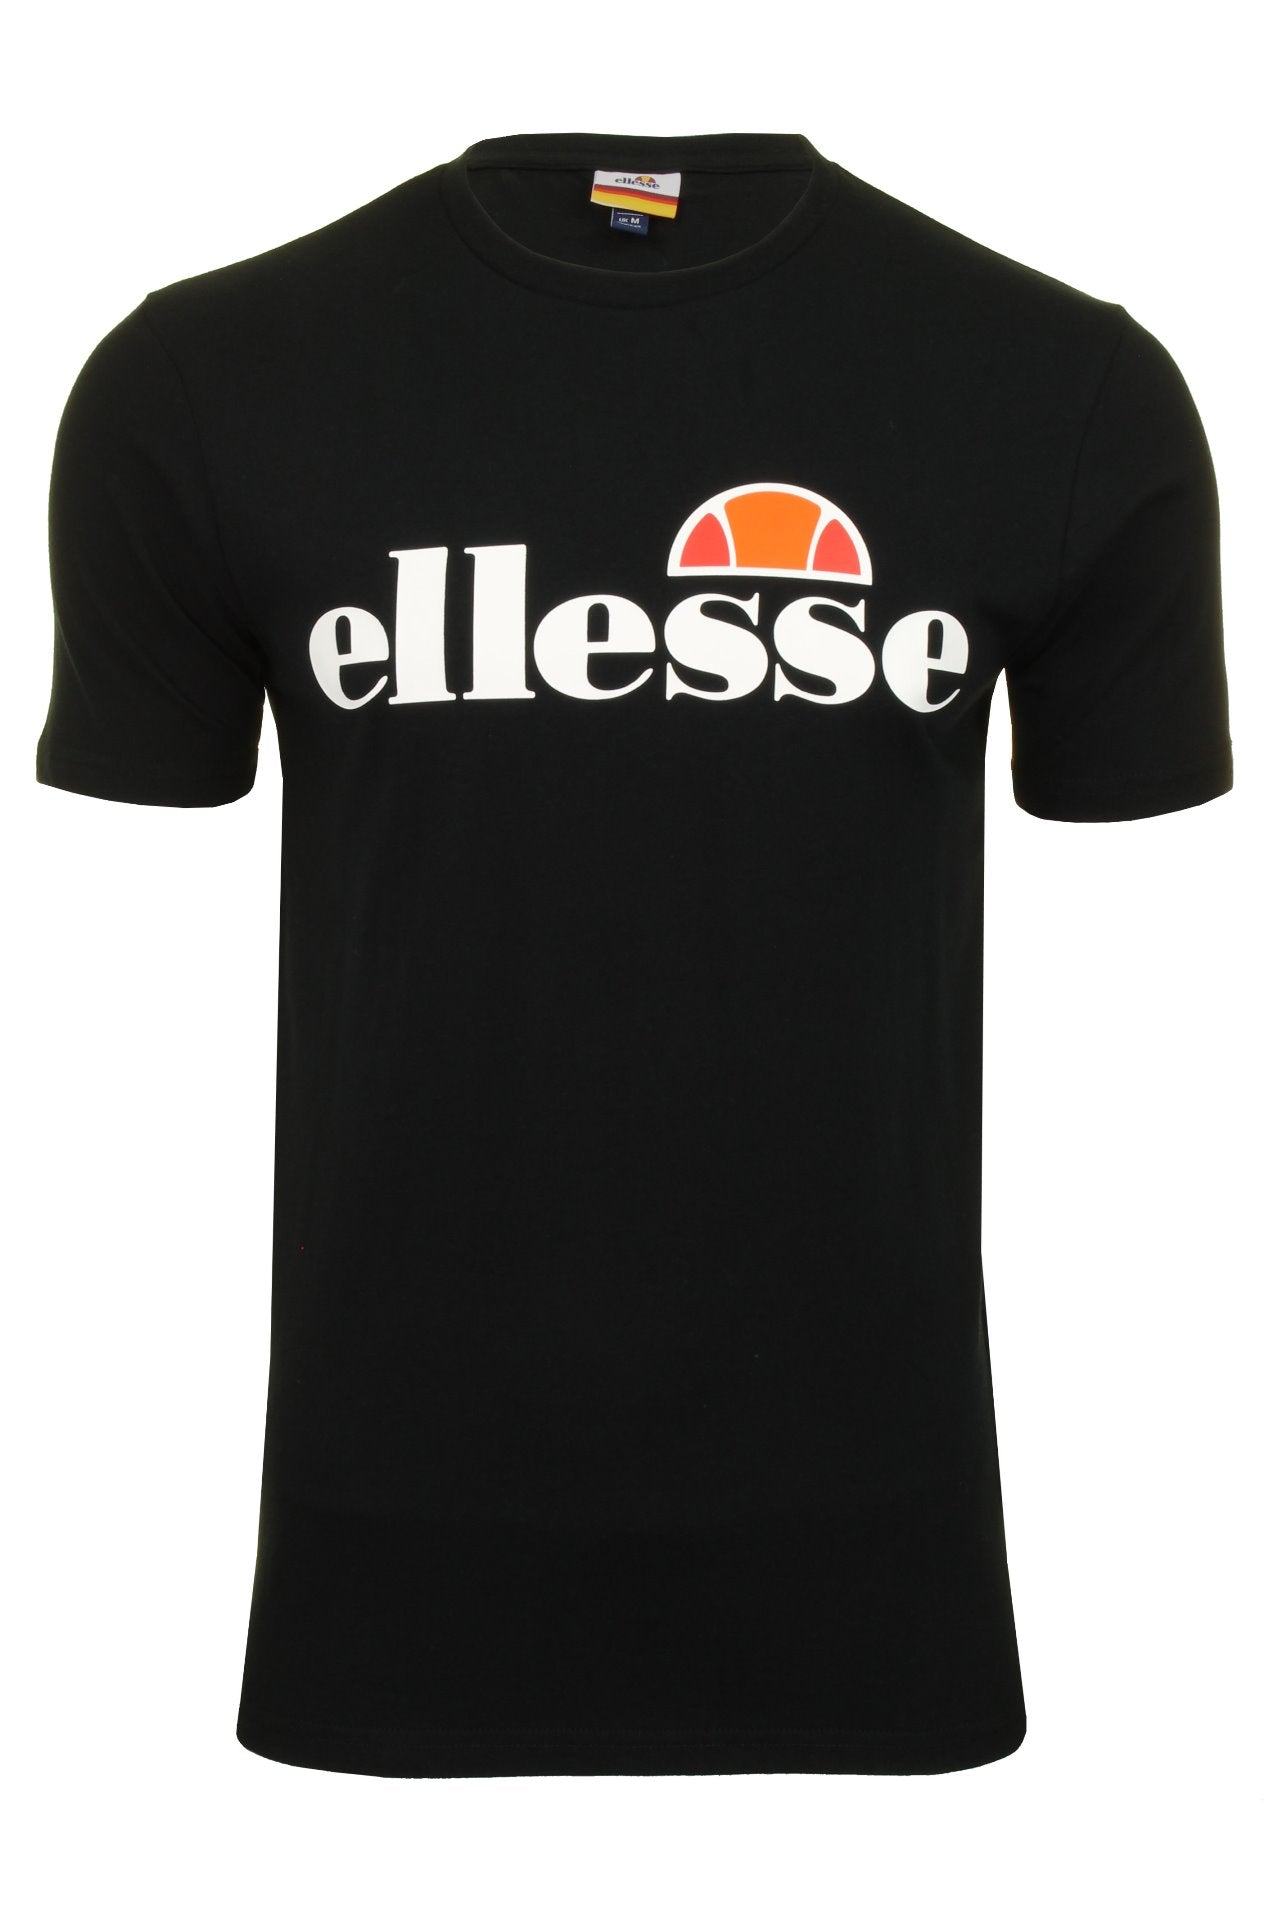 Ellesse Mens Logo Front Crew Neck T-Shirt 'PRADO' - Short Sleeved_01_Shc07405_Black